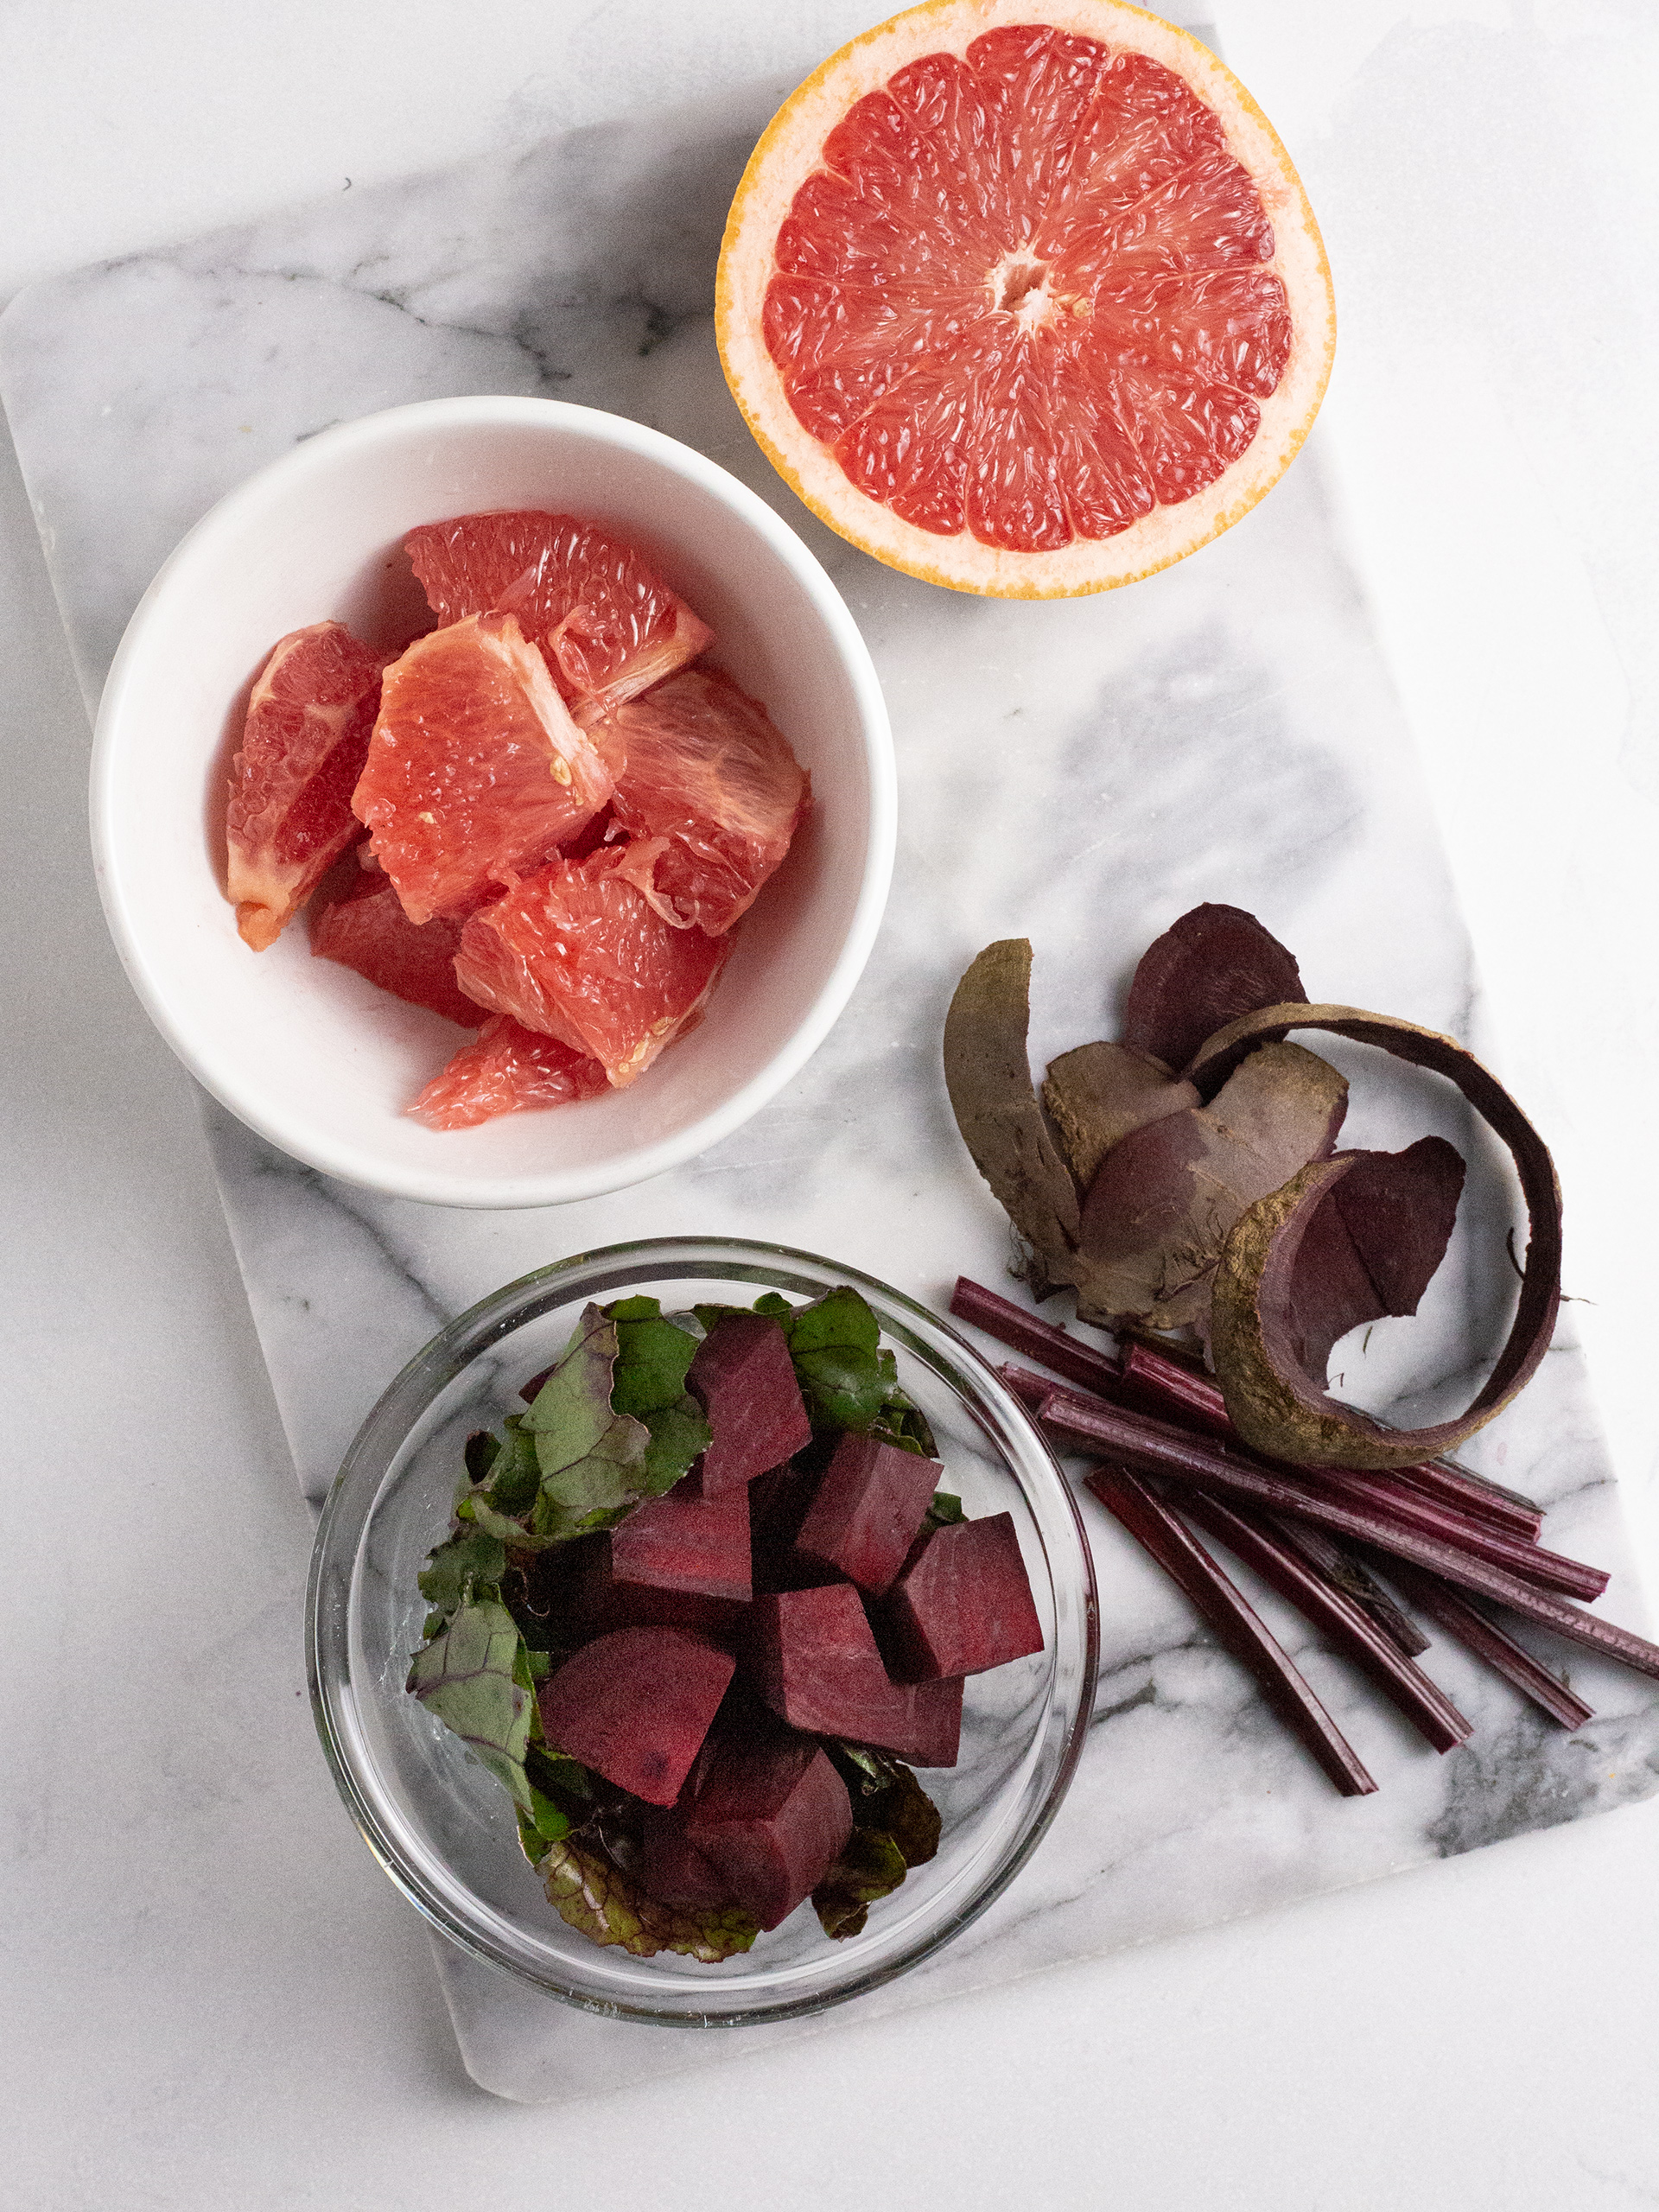 Peeled and sliced beets and grapefruit